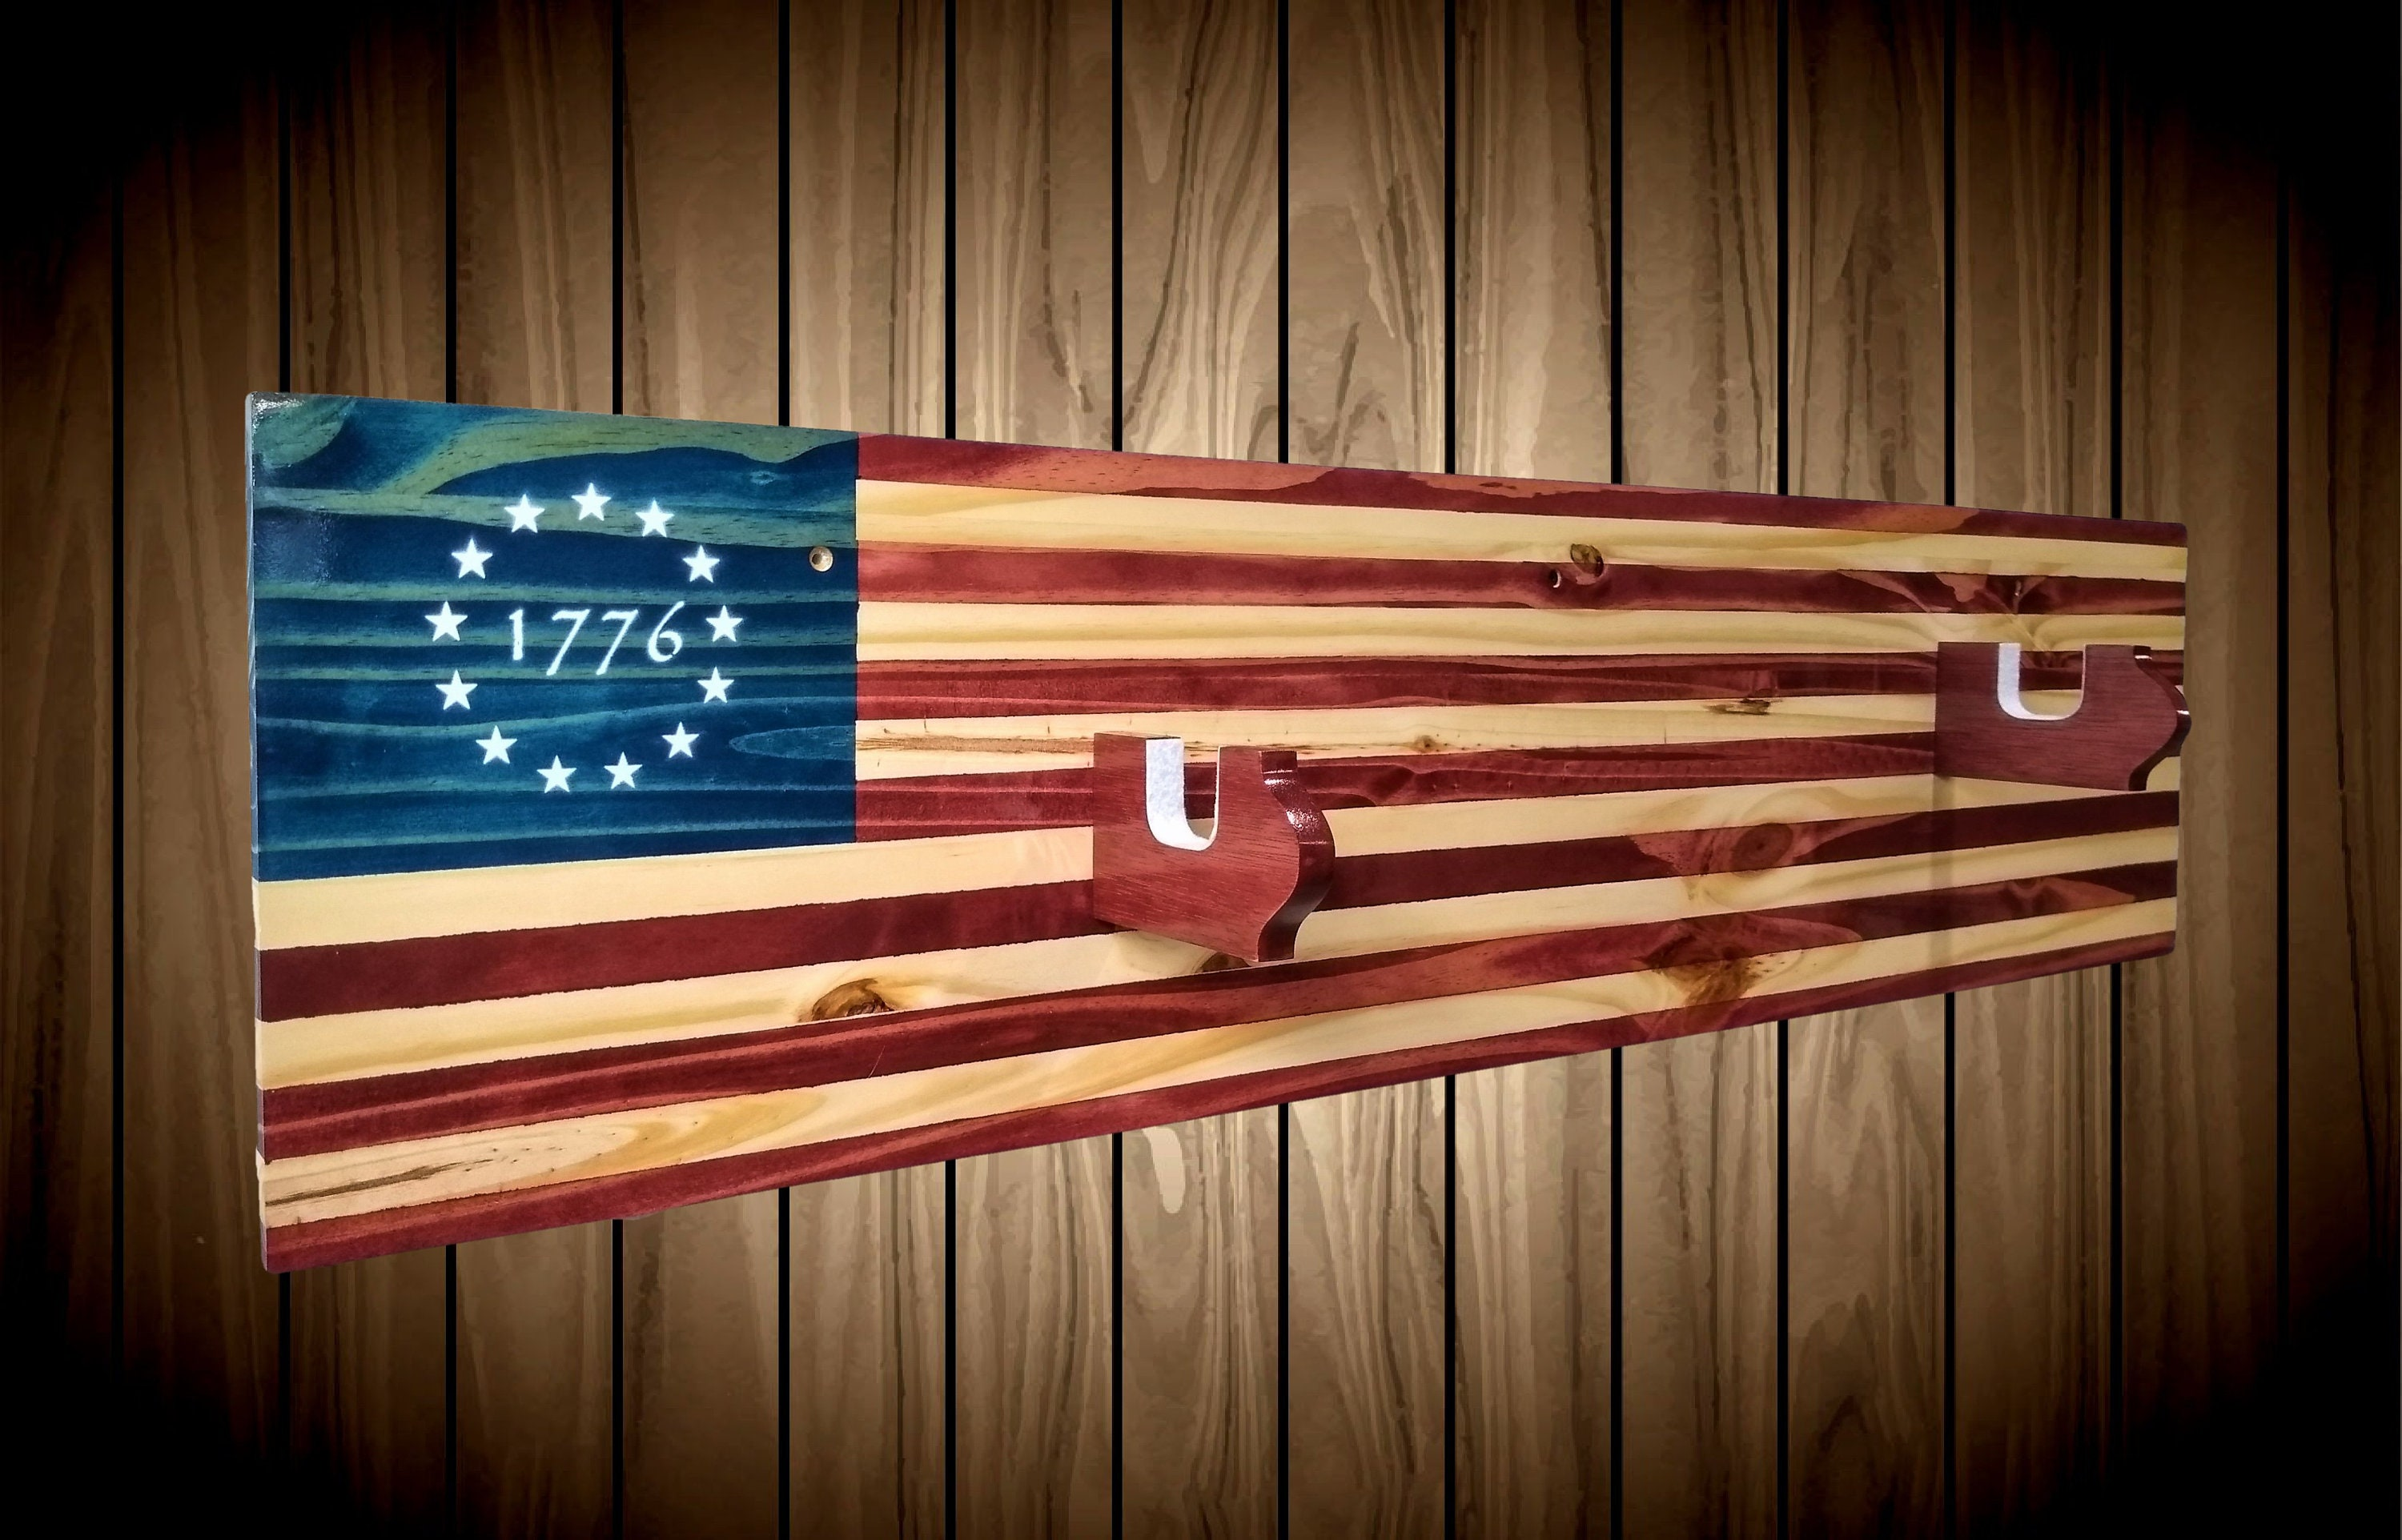 Patriotic 1776 American Flag Gun Rack Knotty Pine Wall